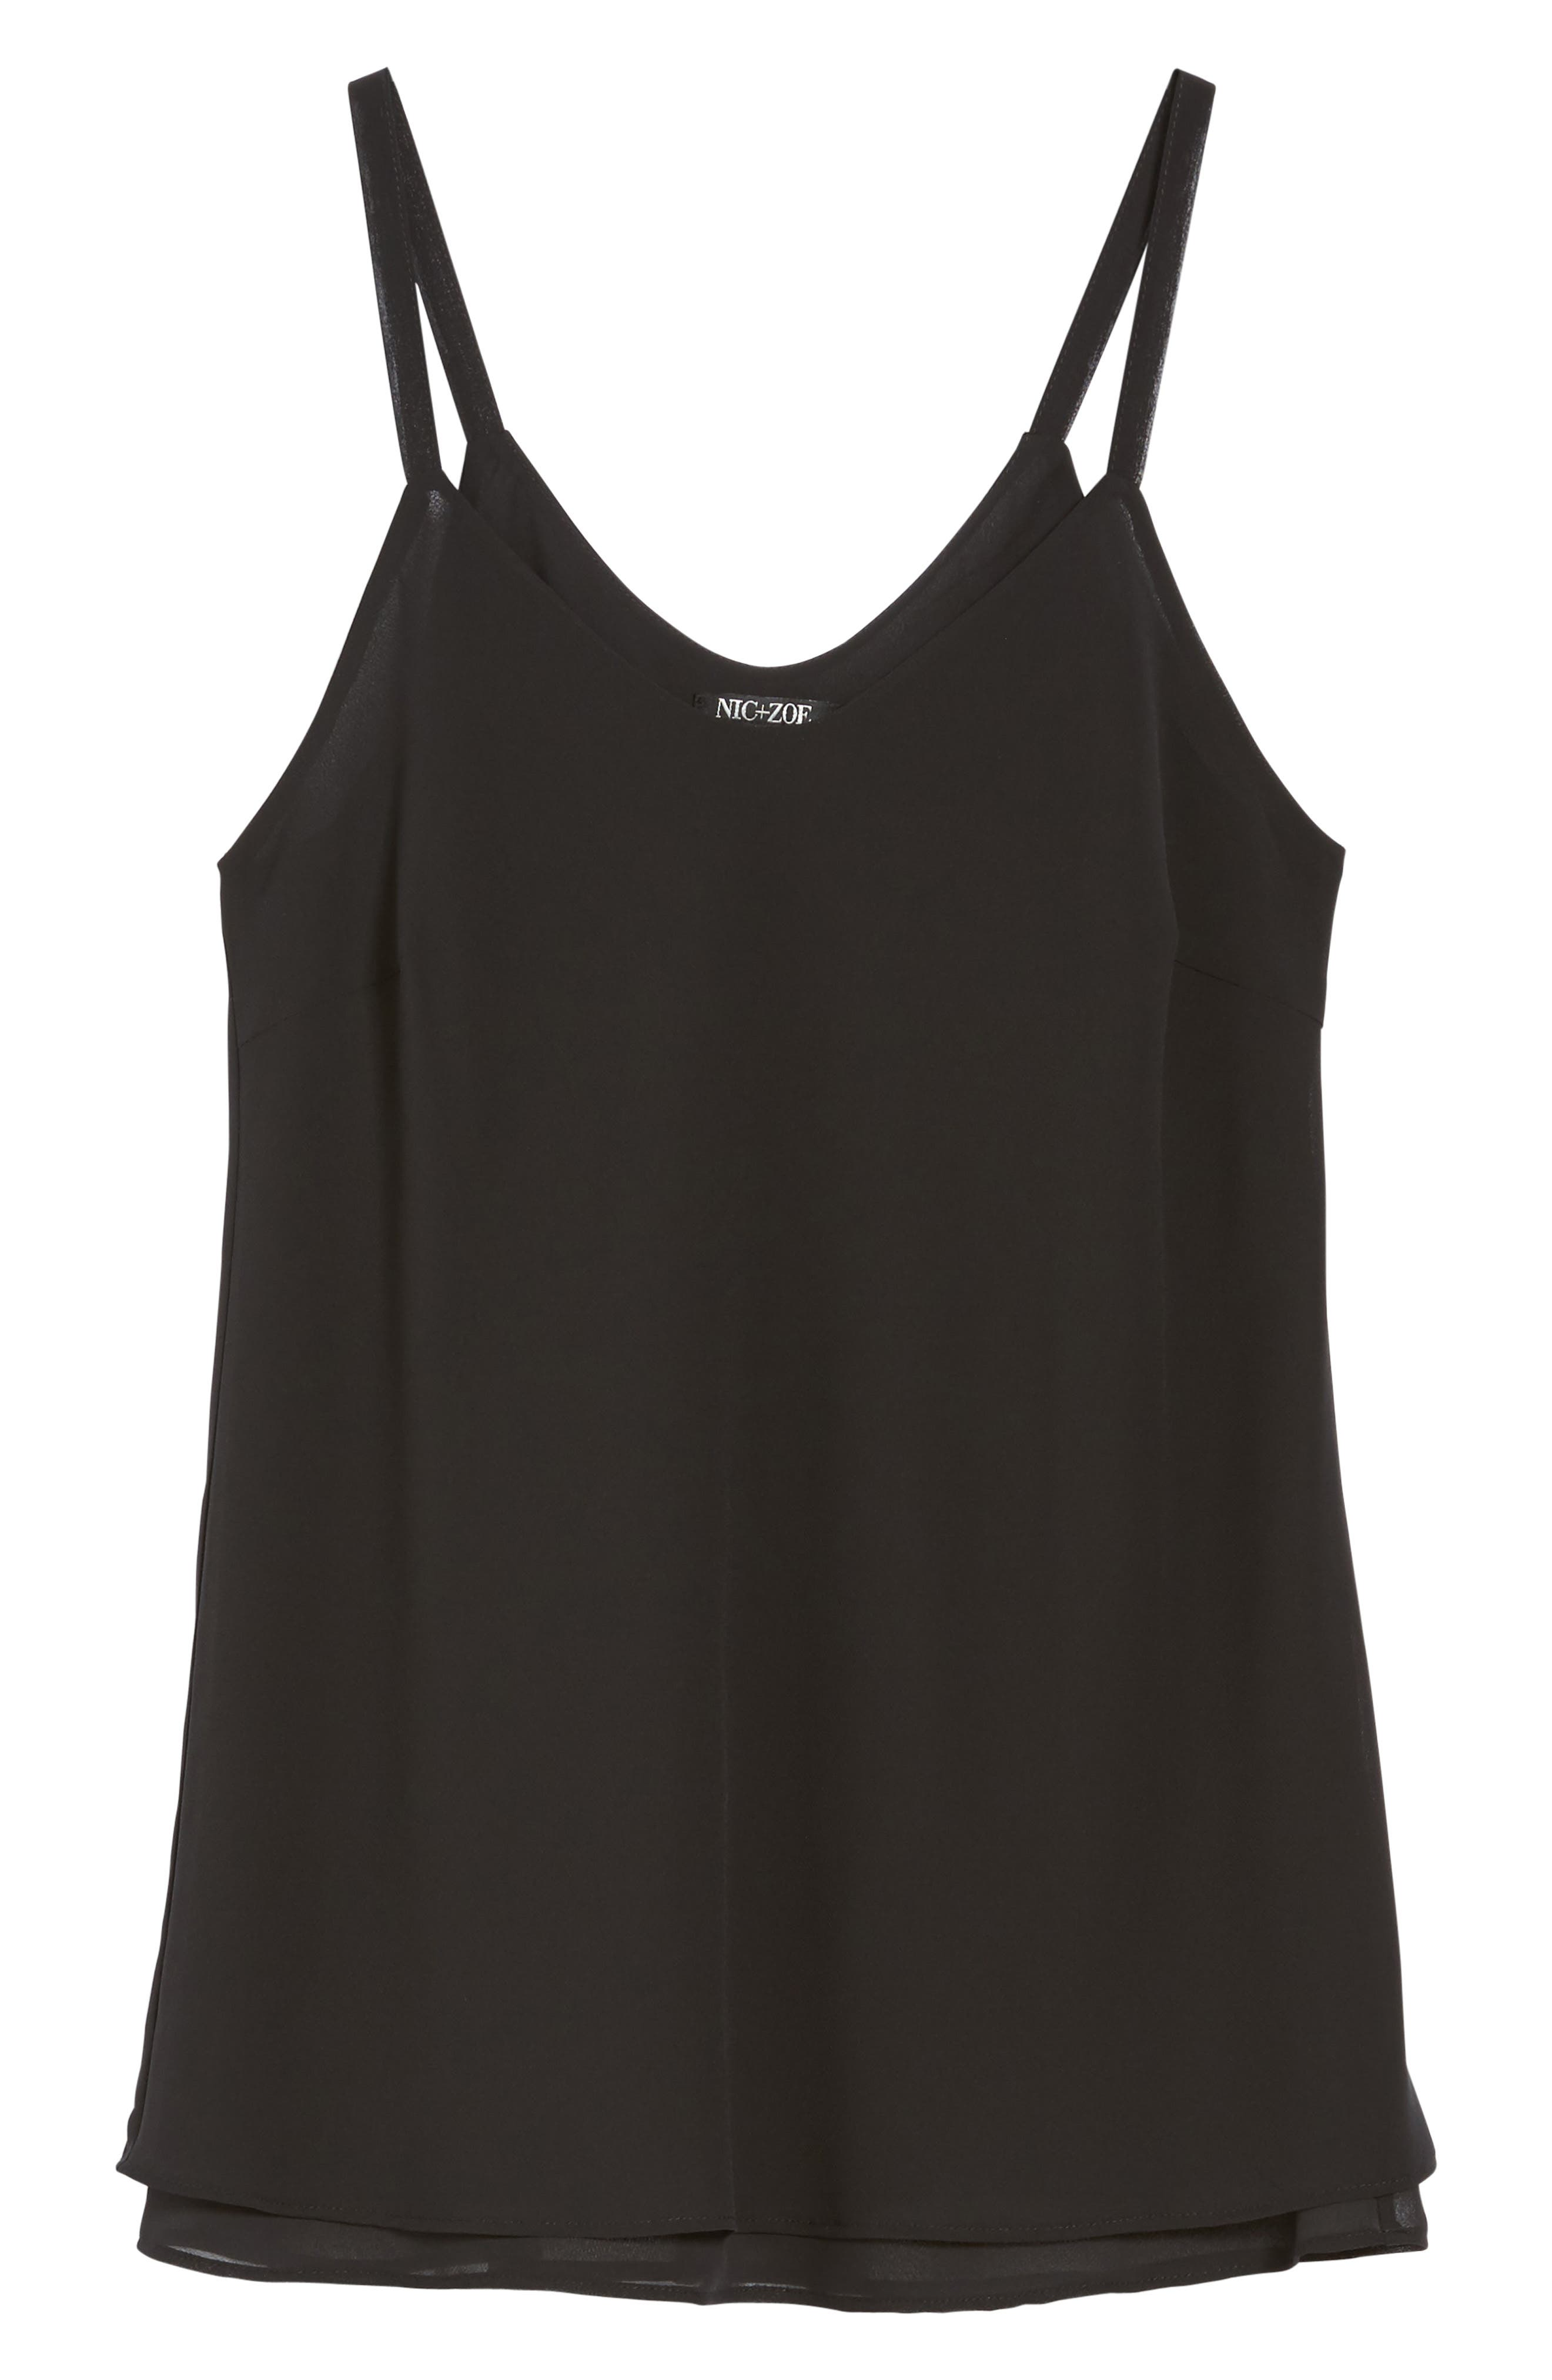 Paired Up Tank,                             Alternate thumbnail 6, color,                             Black Onyx